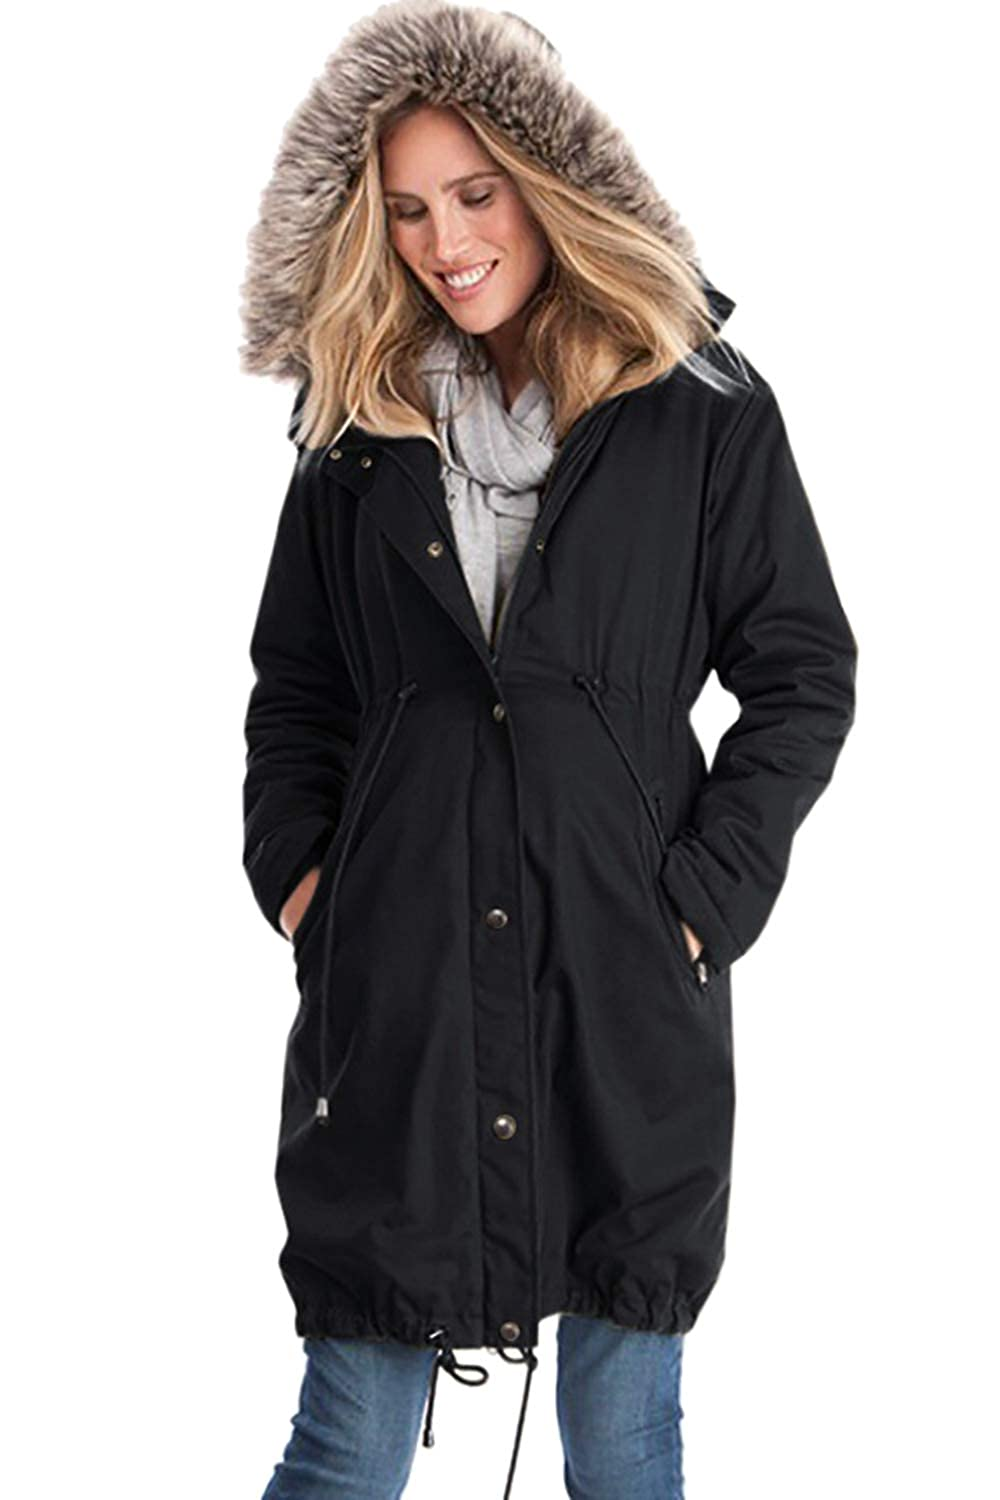 Zilcremo Womens Winter Kangaroo Trenchcoat Faux Fur Hooded Padding Jackets Outercoat